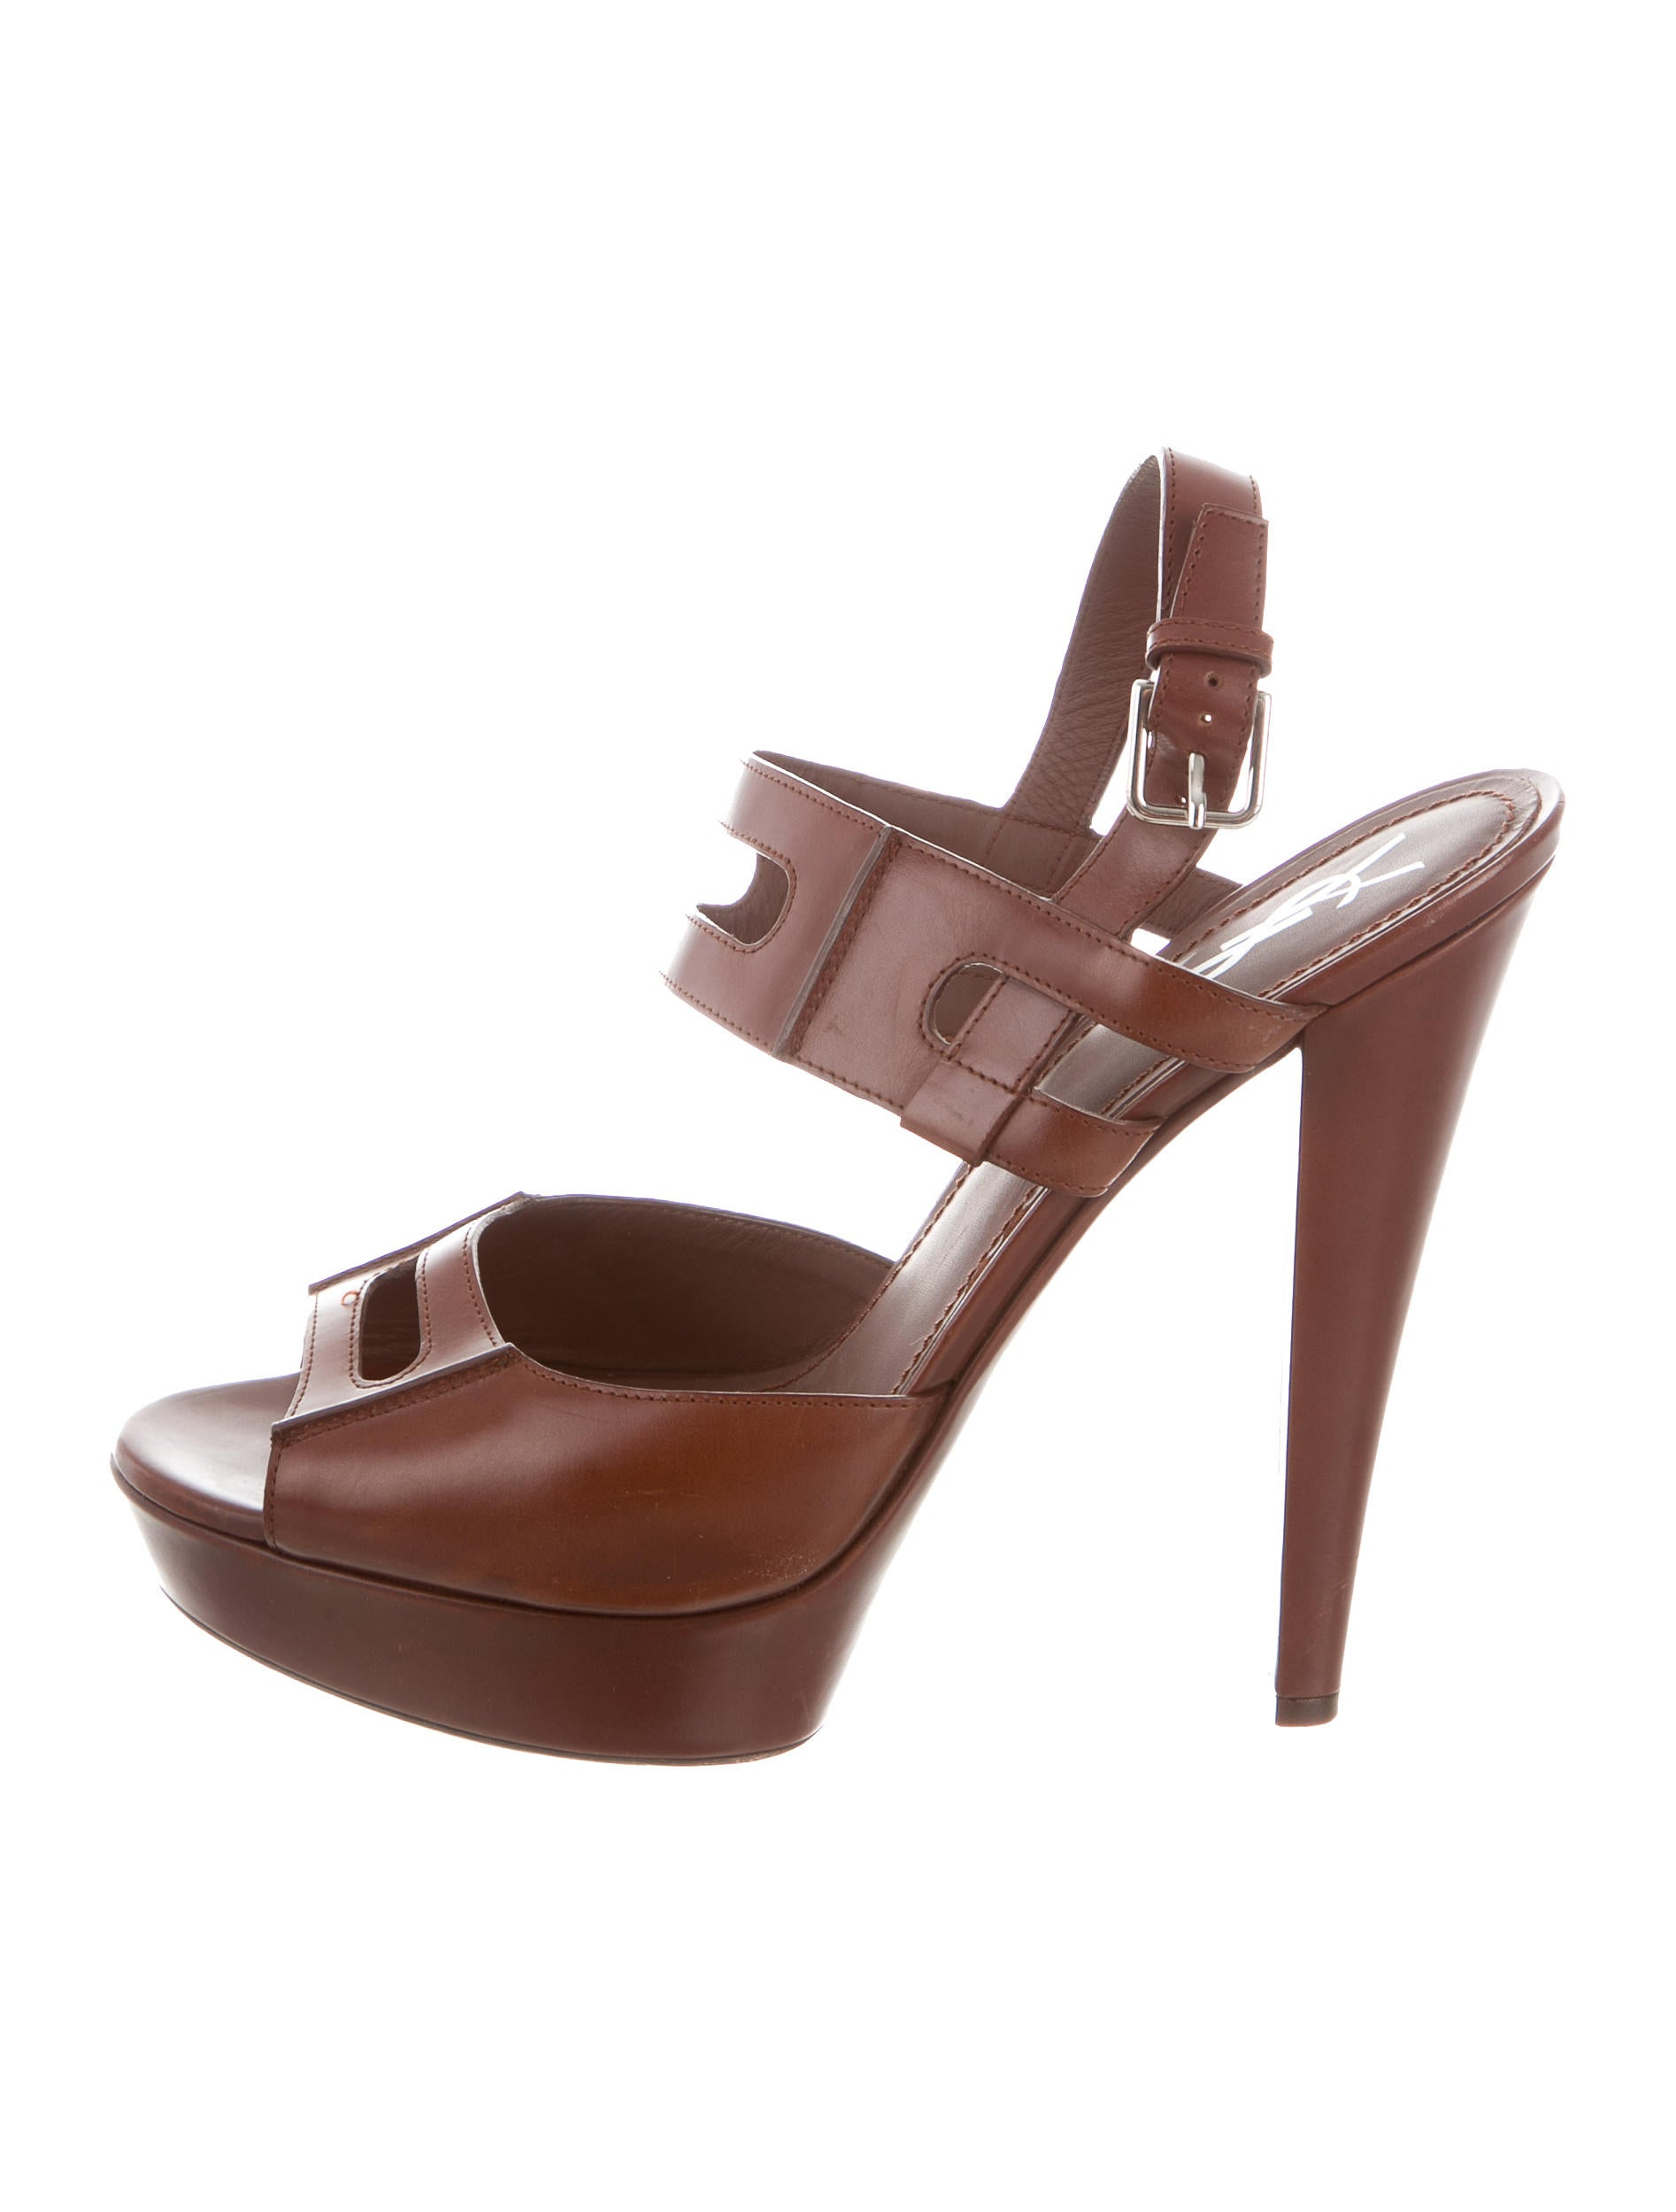 Yves Saint Laurent Platform Cutout Sandals quality for sale free shipping outlet store popular free shipping real UGXWidrgg